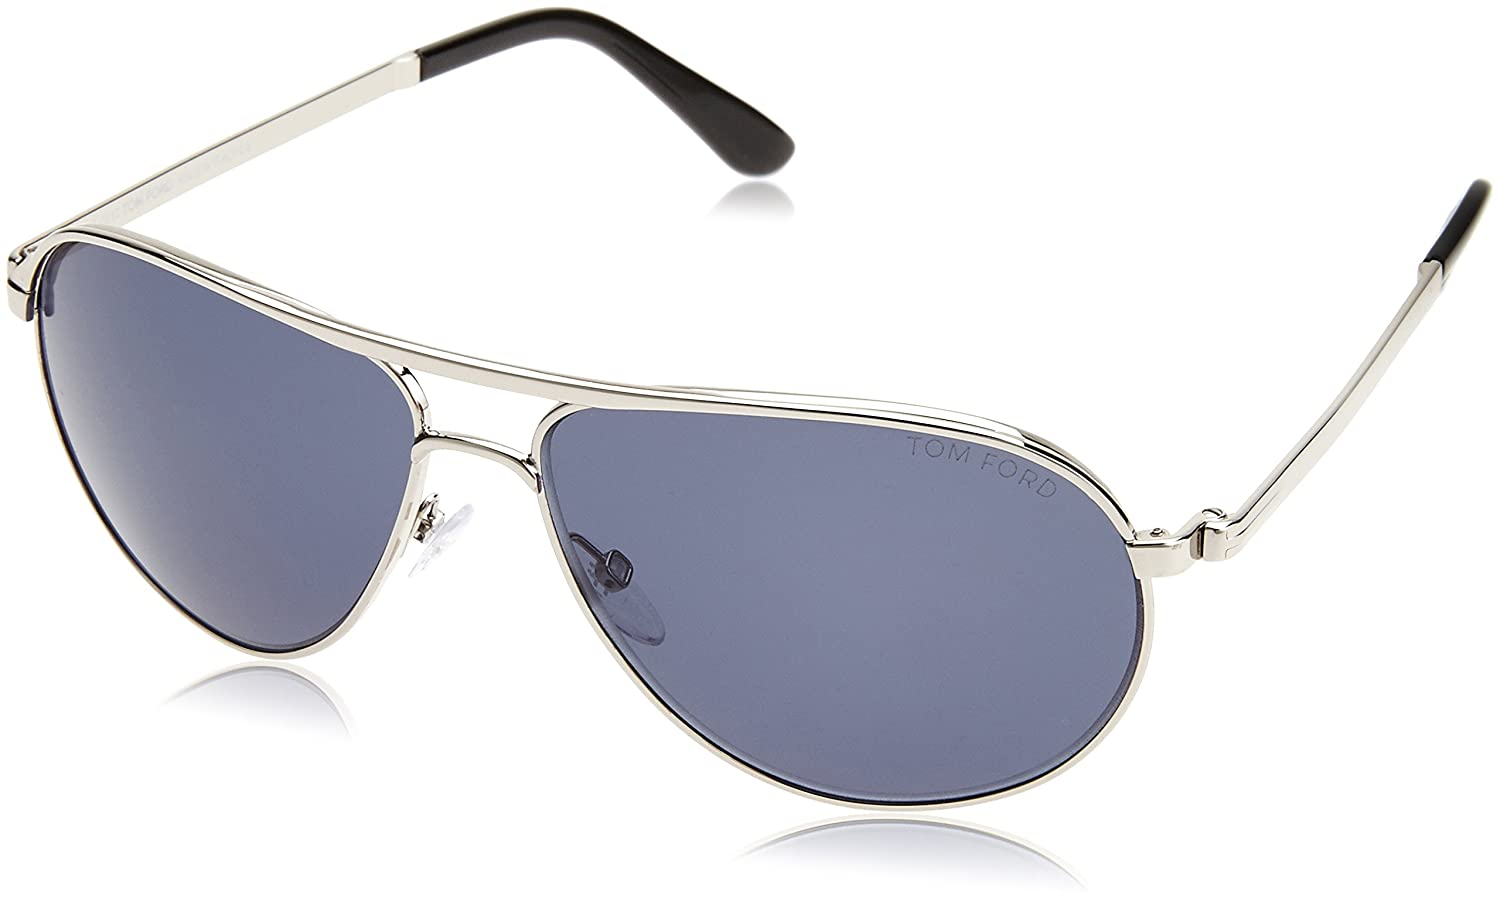 d2f38f982c1 Amazon.com  Tom Ford TF144 18V Silver Marko Pilot Sunglasses Lens Category  1 Size 58mm  Tom Ford  Shoes